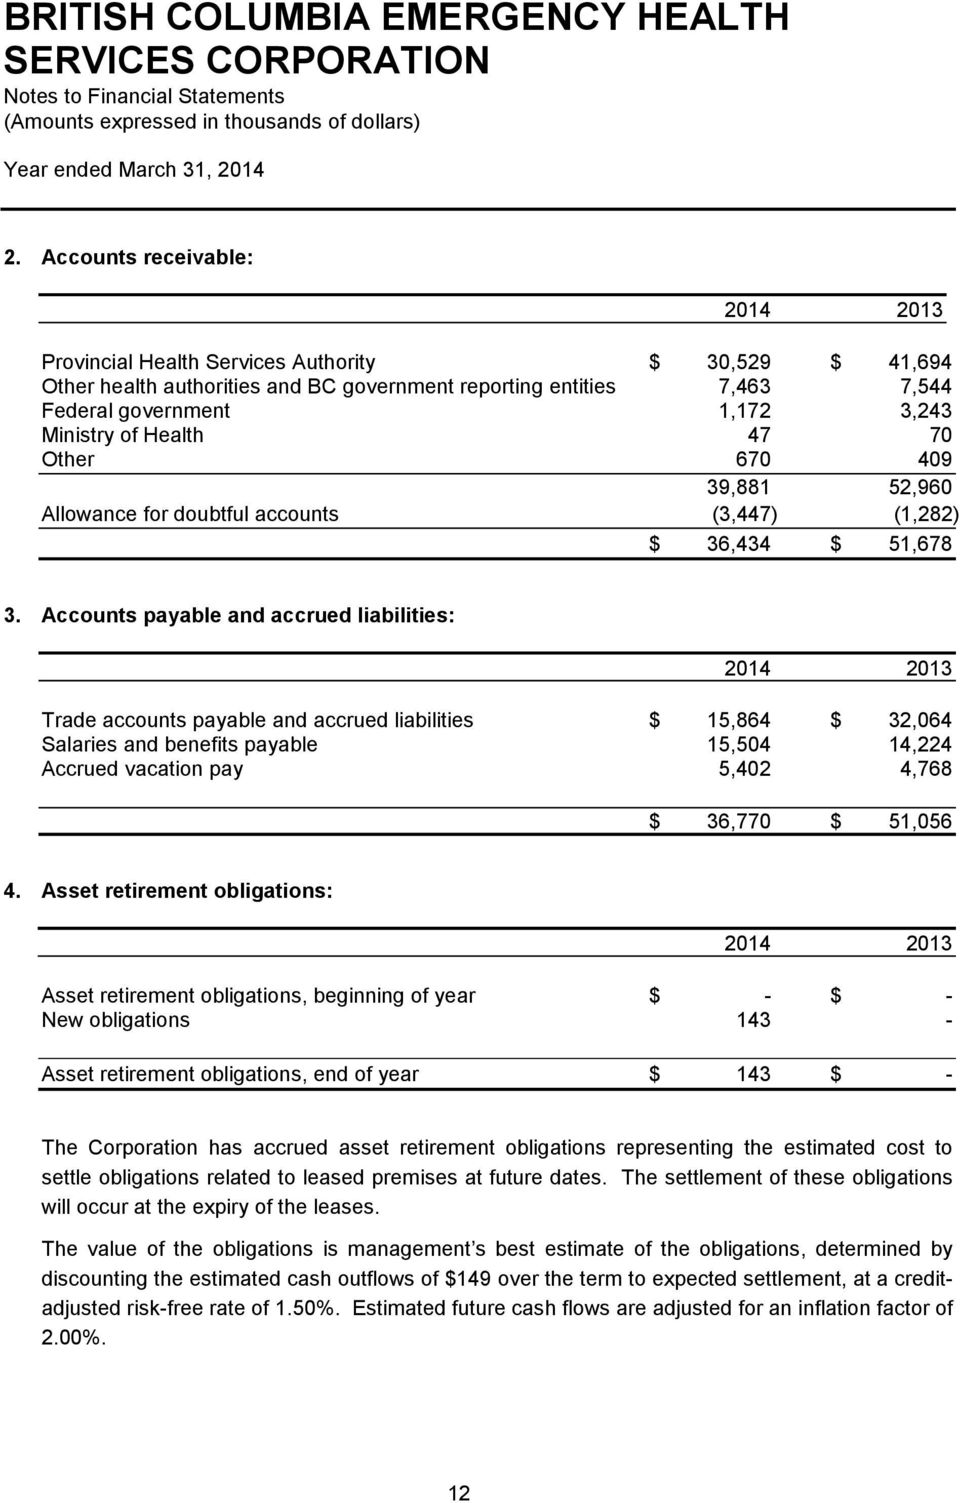 Accounts payable and accrued liabilities: Trade accounts payable and accrued liabilities $ 15,864 $ 32,064 Salaries and benefits payable 15,504 14,224 Accrued vacation pay 5,402 4,768 $ 36,770 $